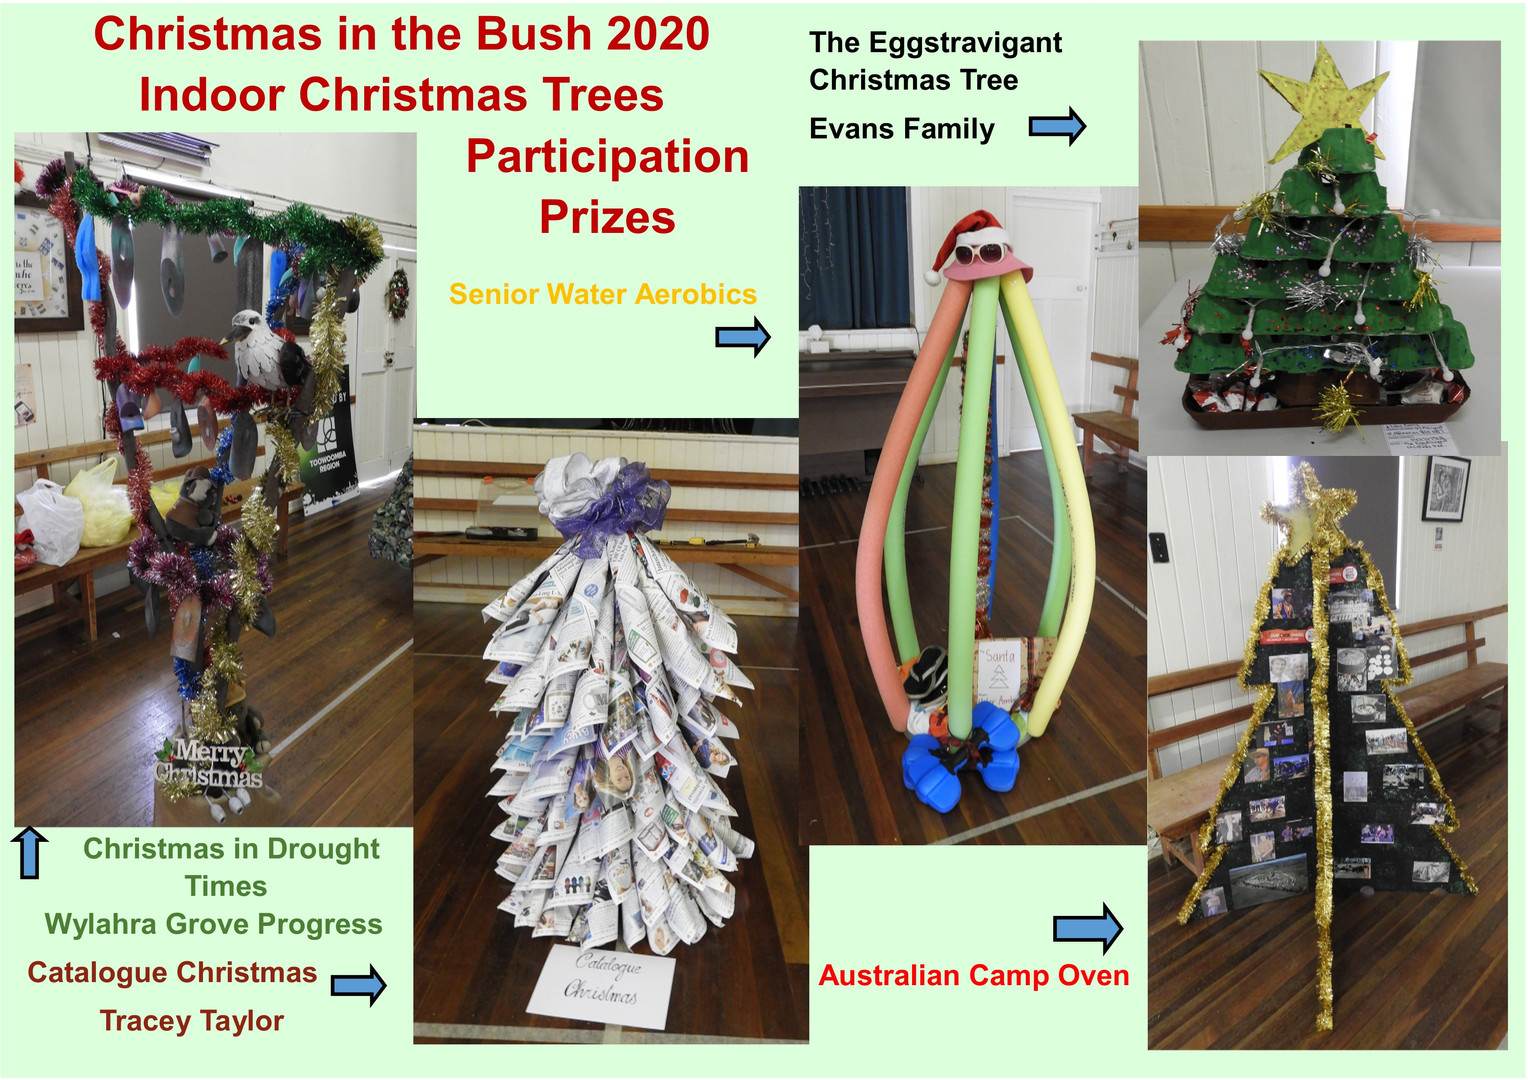 Indoor Christmas Trees - Participation P